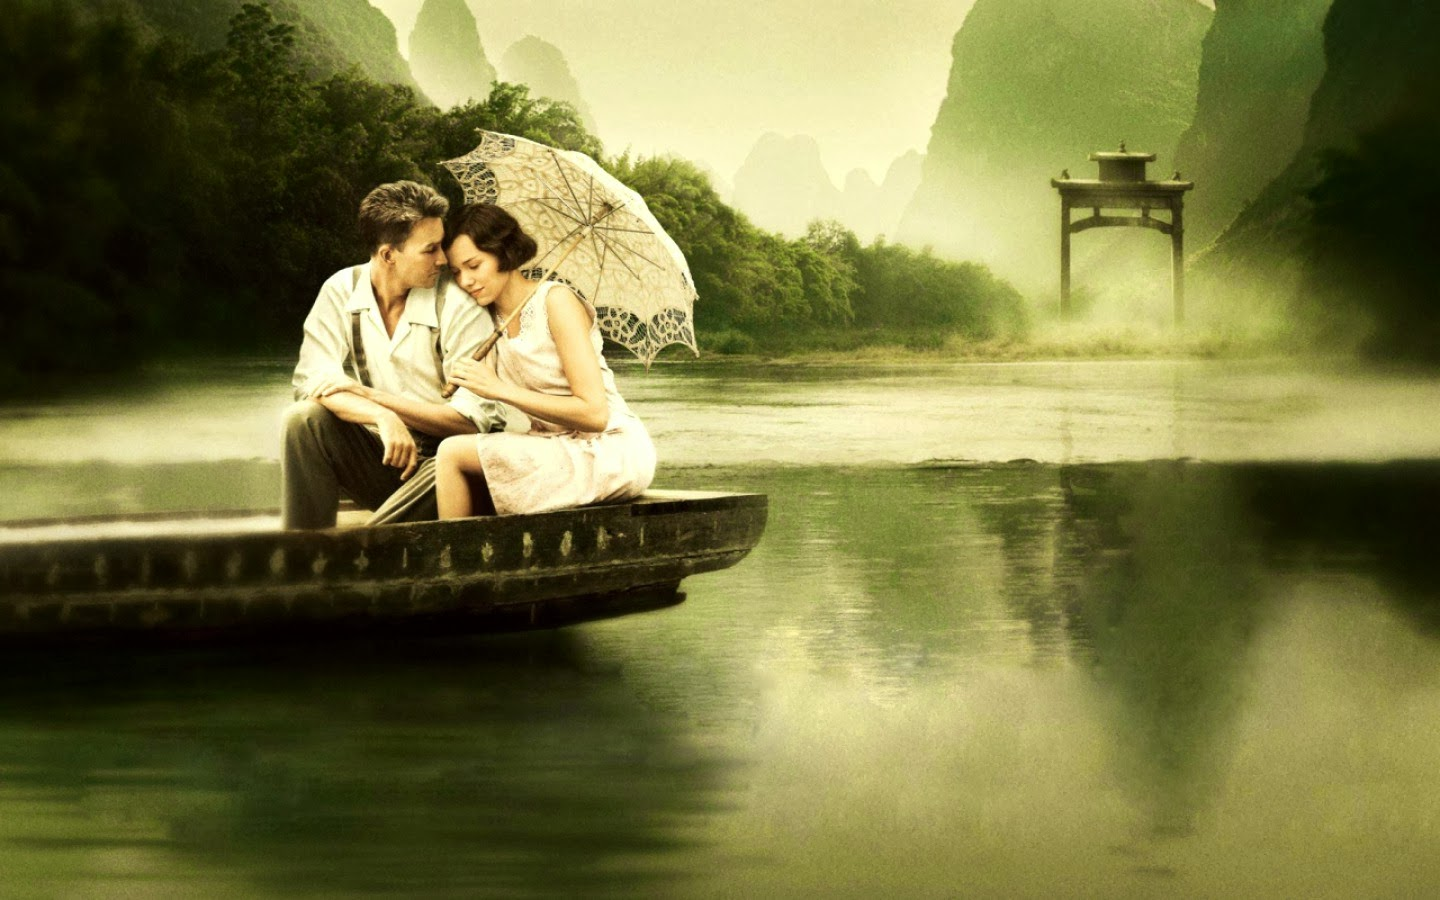 Missing Beats of Life: Romantic Couple HD Wallpaper and Image